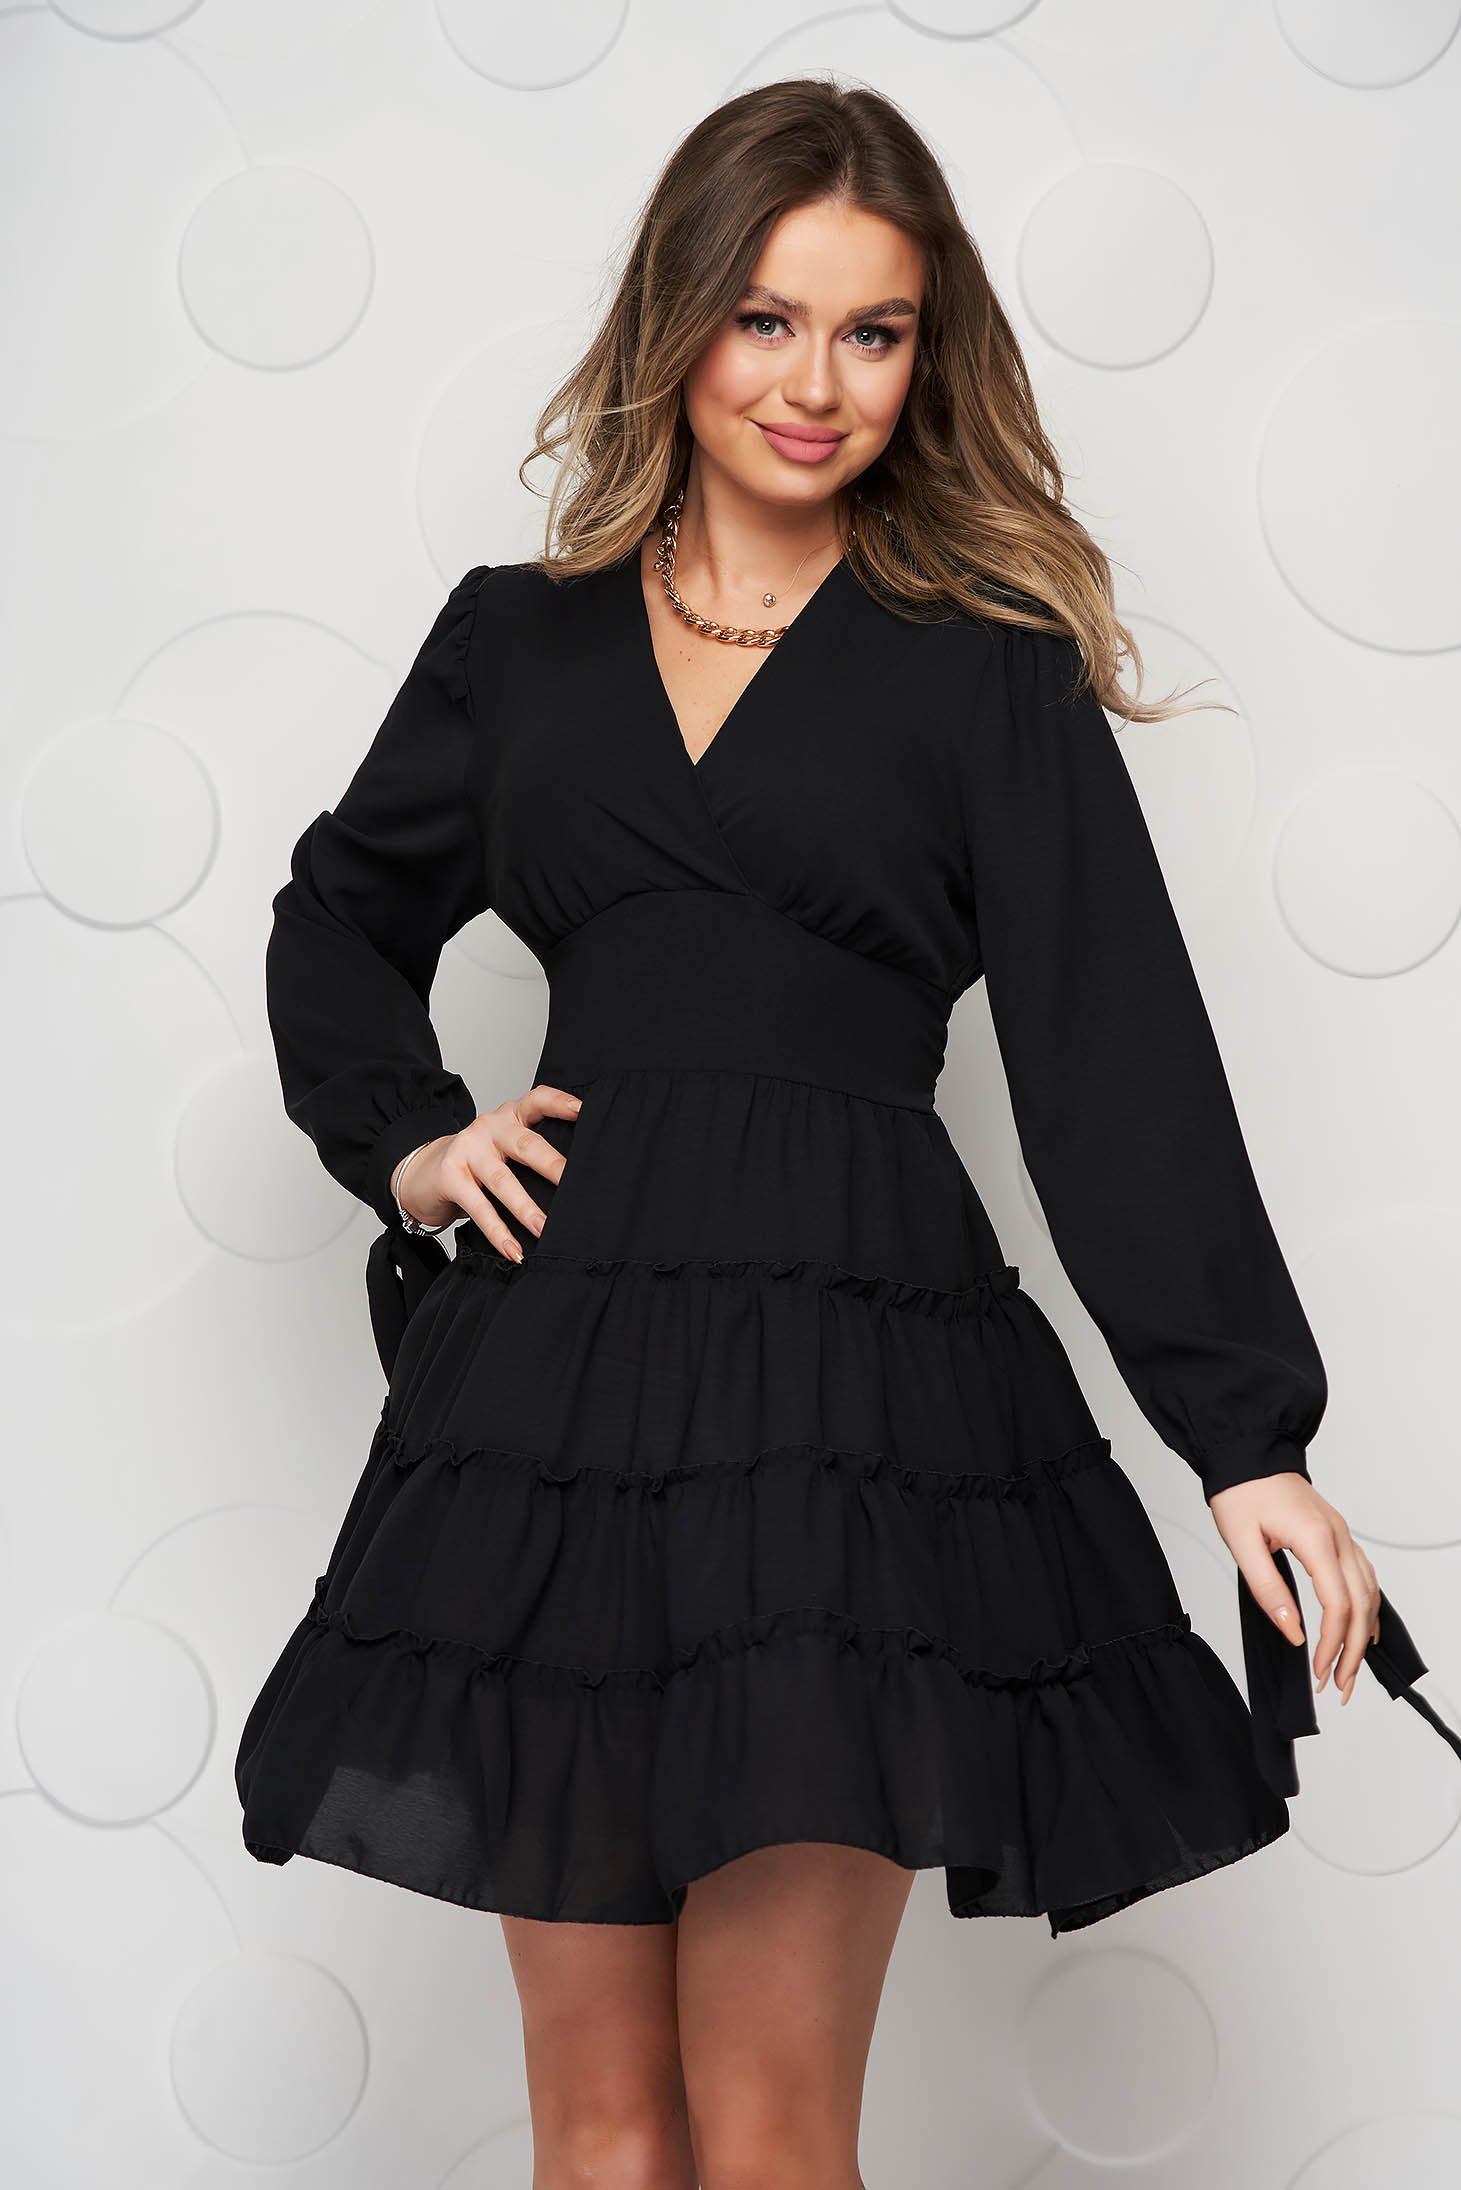 Black dress with ruffle details cloche wrap over front